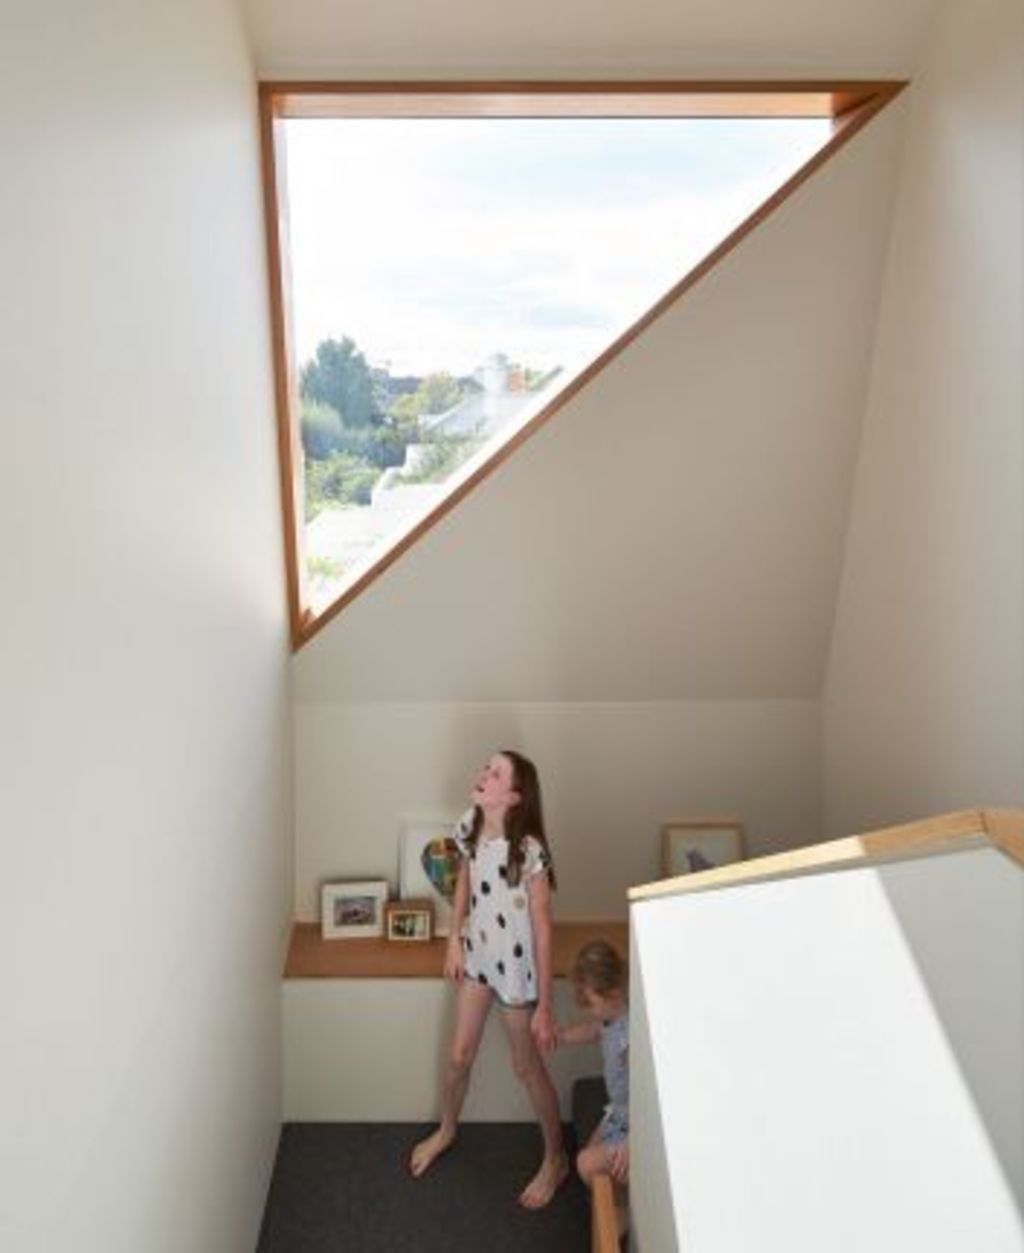 A little seat on the stair landing creates a safe haven. Photo: Peter Bennetts